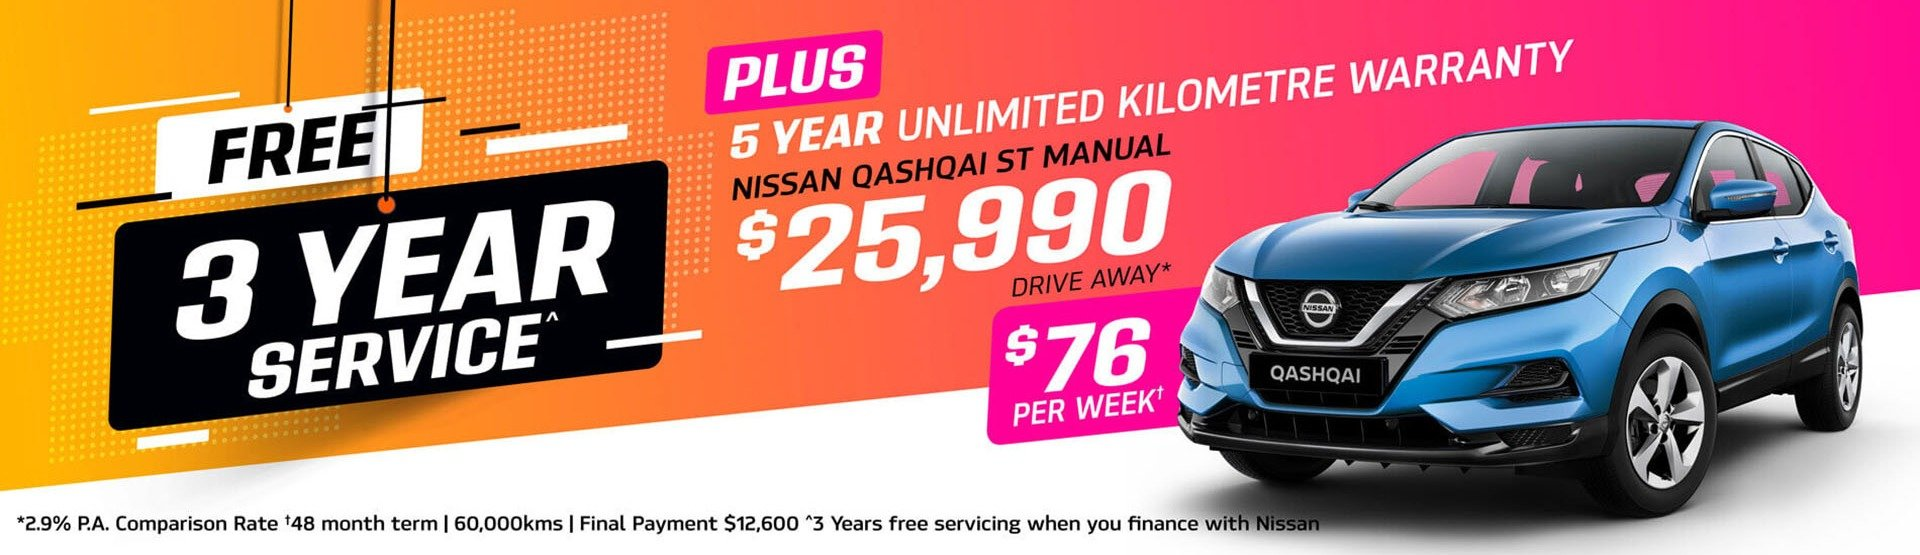 Parry NQ Nissan Qashqai Offer